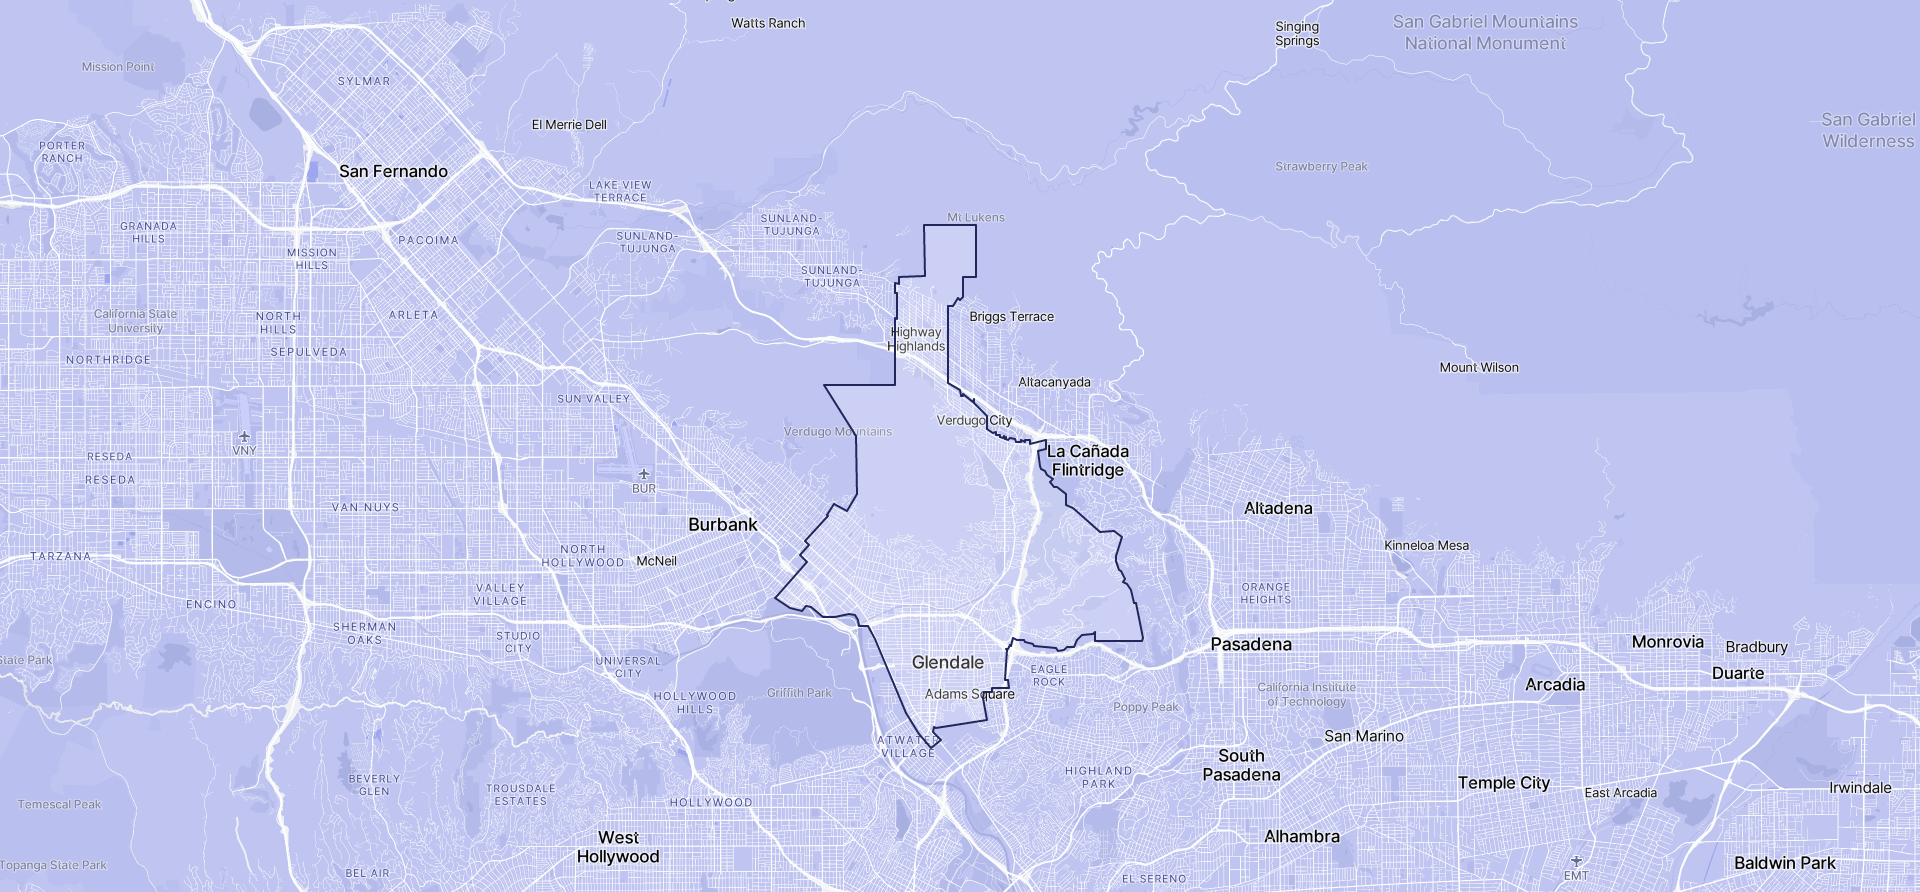 Image of Glendale boundaries on a map.